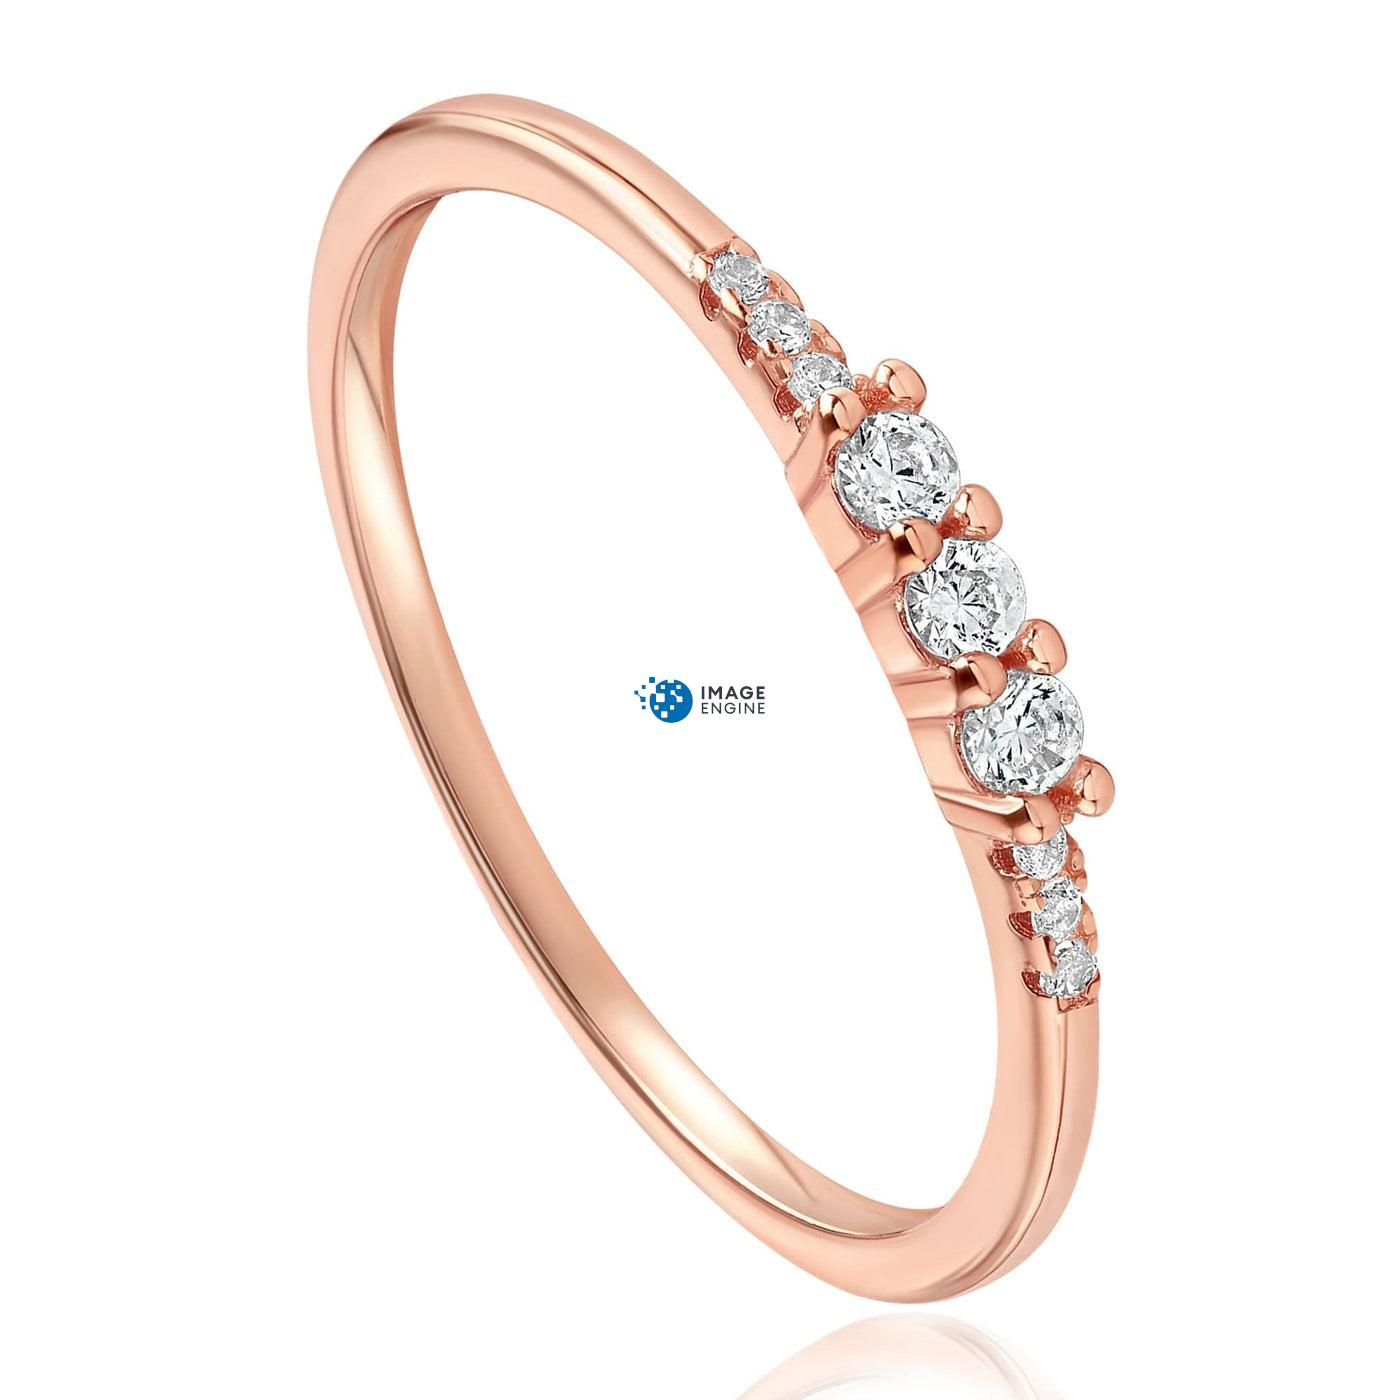 Emie Ring - Front View Facing Down - 18K Rose Gold Vermeil